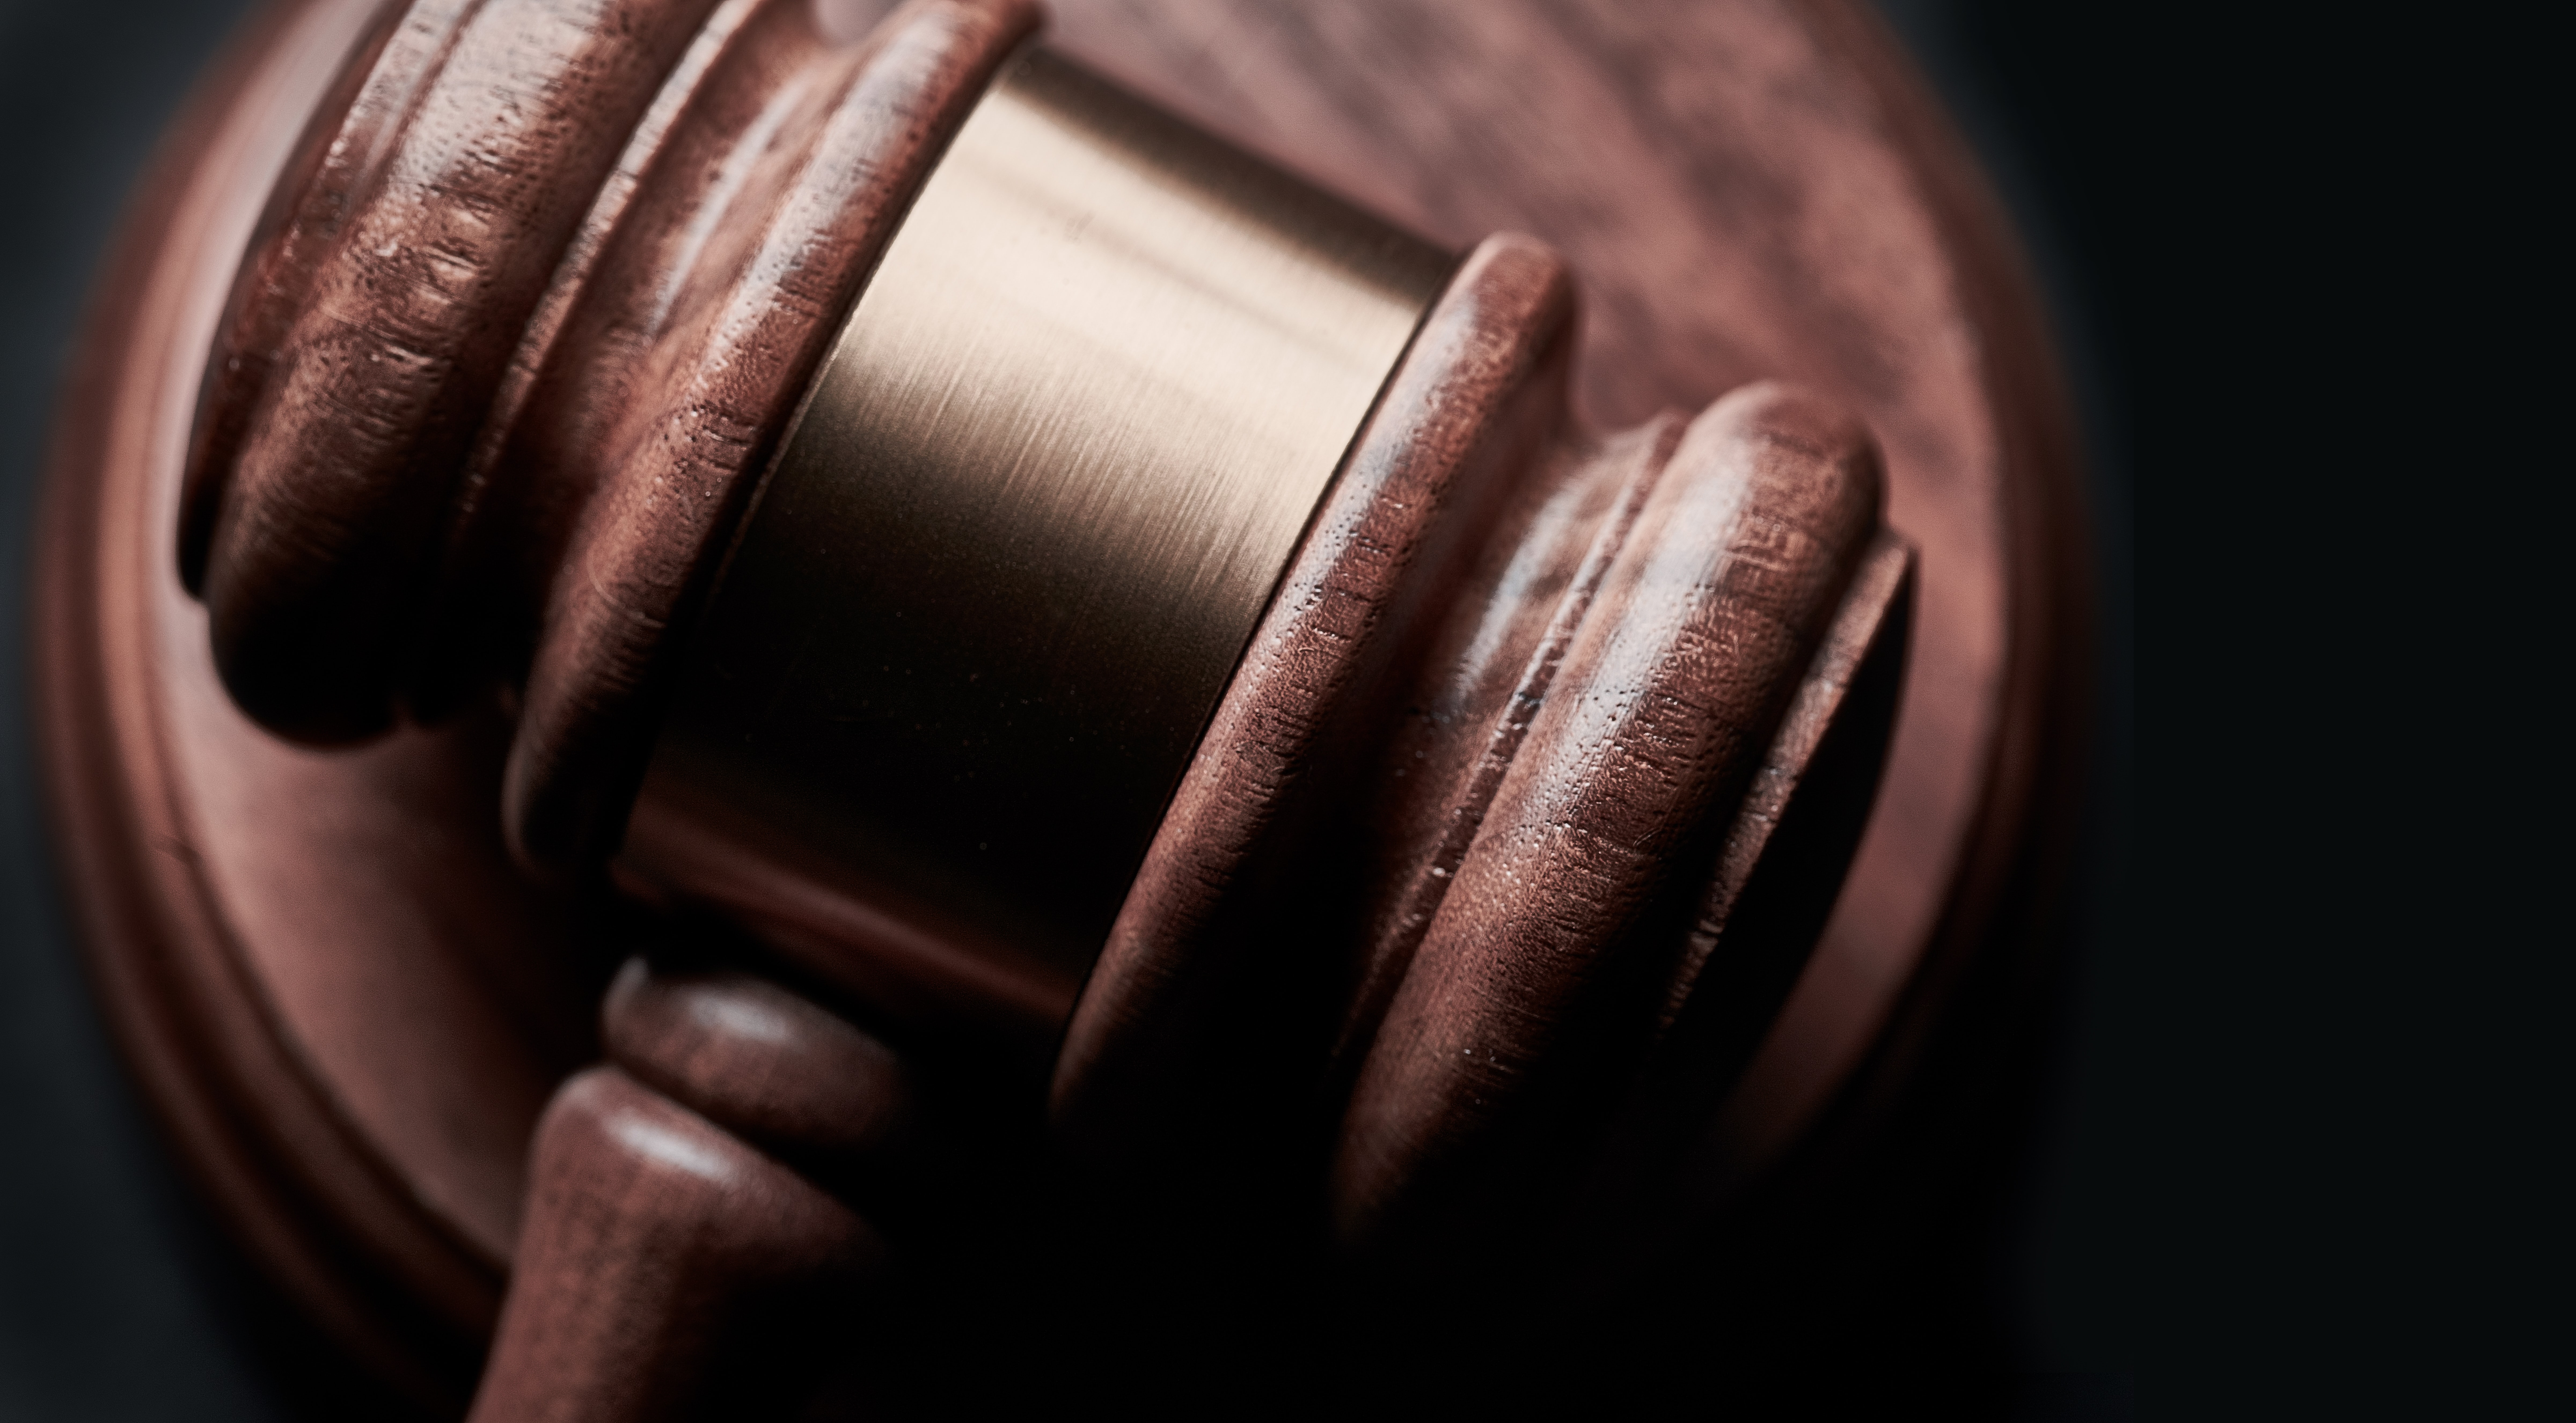 The Mystery of the Efficient and Responsible Litigant: Notes on a Data-Driven Analysis of Litigation in Public Contracts from the Delhi High Court